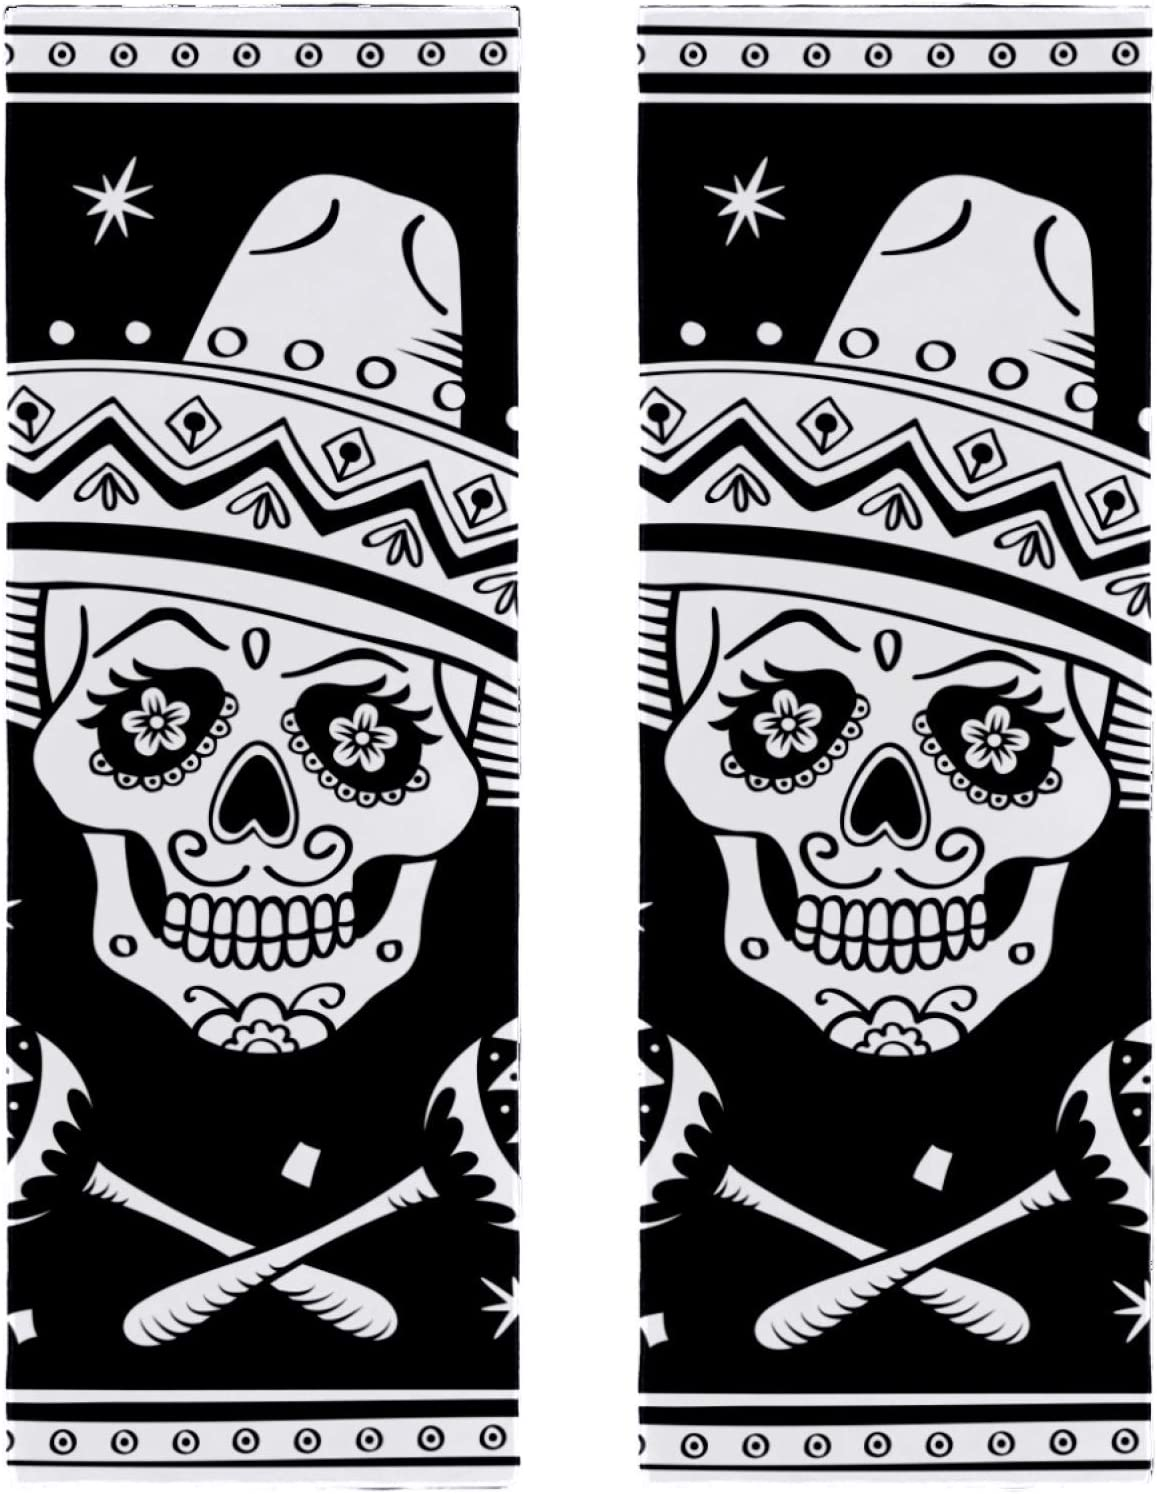 2 Packs Yoga Towel Max All items free shipping 58% OFF for Gym Travel Mexican and Su Camping Beach